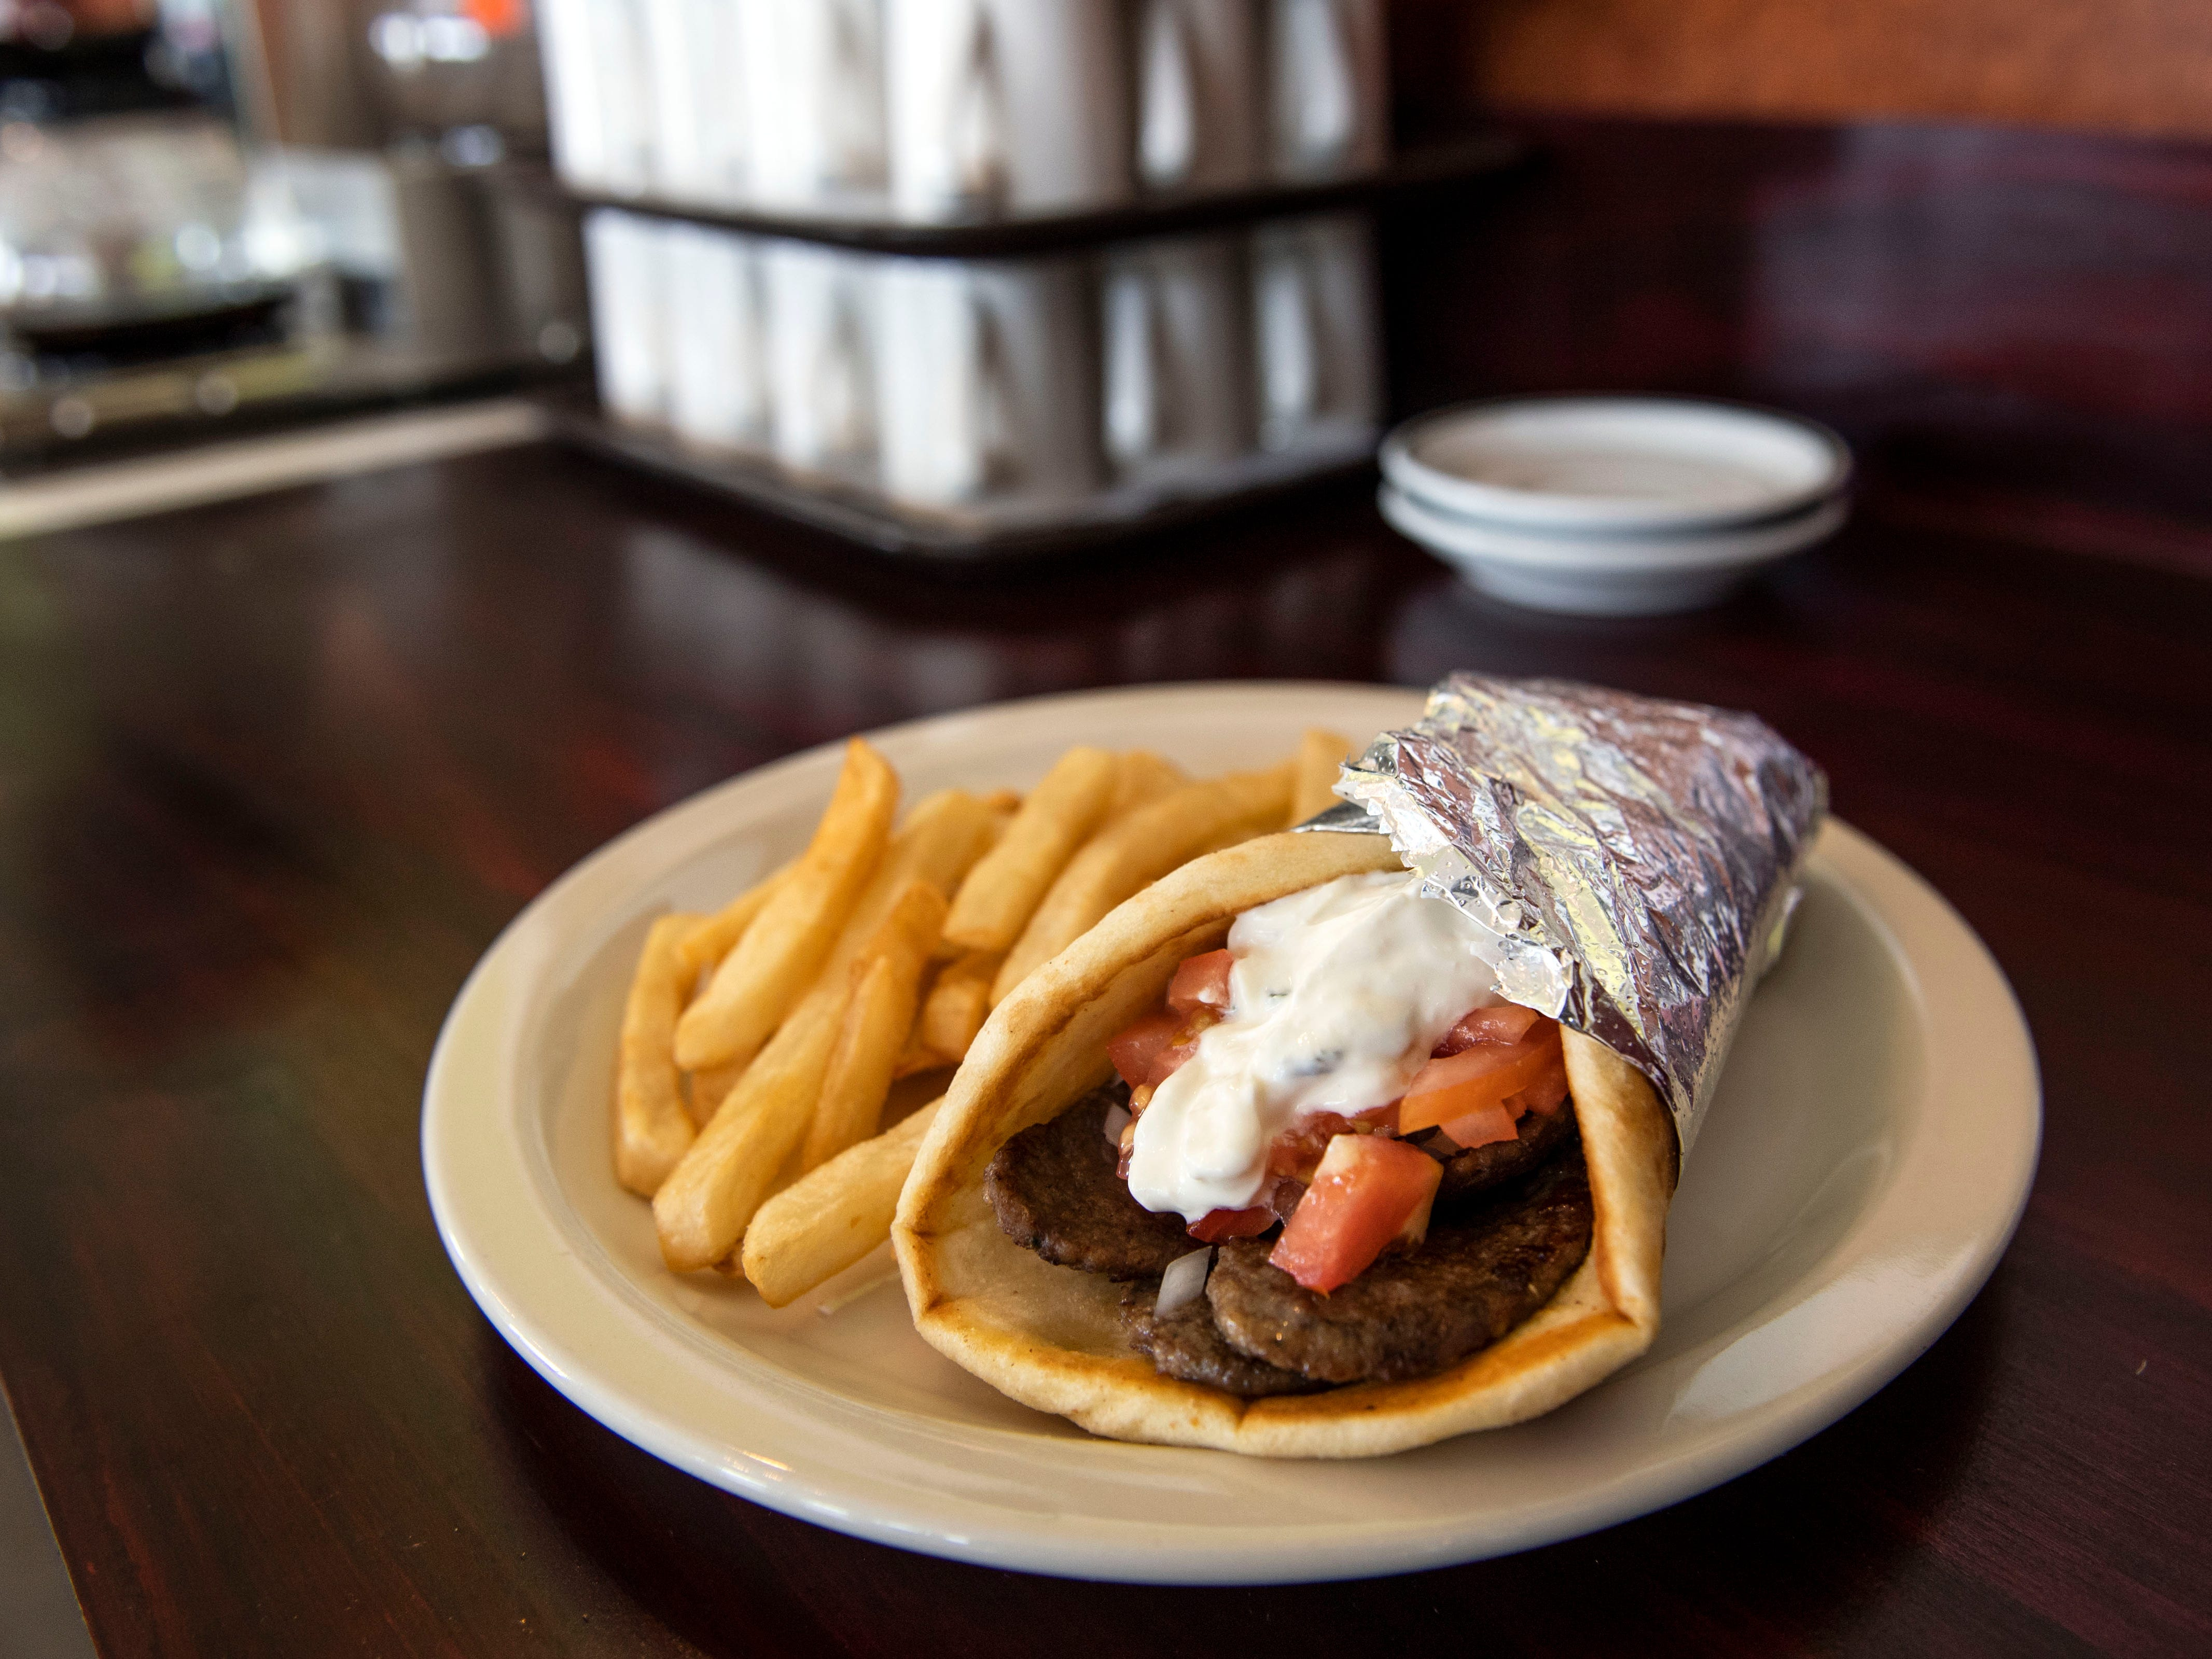 Aurora's Bakery's gyro on Wednesday, August 1, 2018. Aurora's Bakery opened in July 2018, owned and operated by Mexican immigrants Anselmo Arrieta and his wife Guadelupe Rosete. The pair met in New York City, and moved to York in 2002 to 'chase the American Dream.'